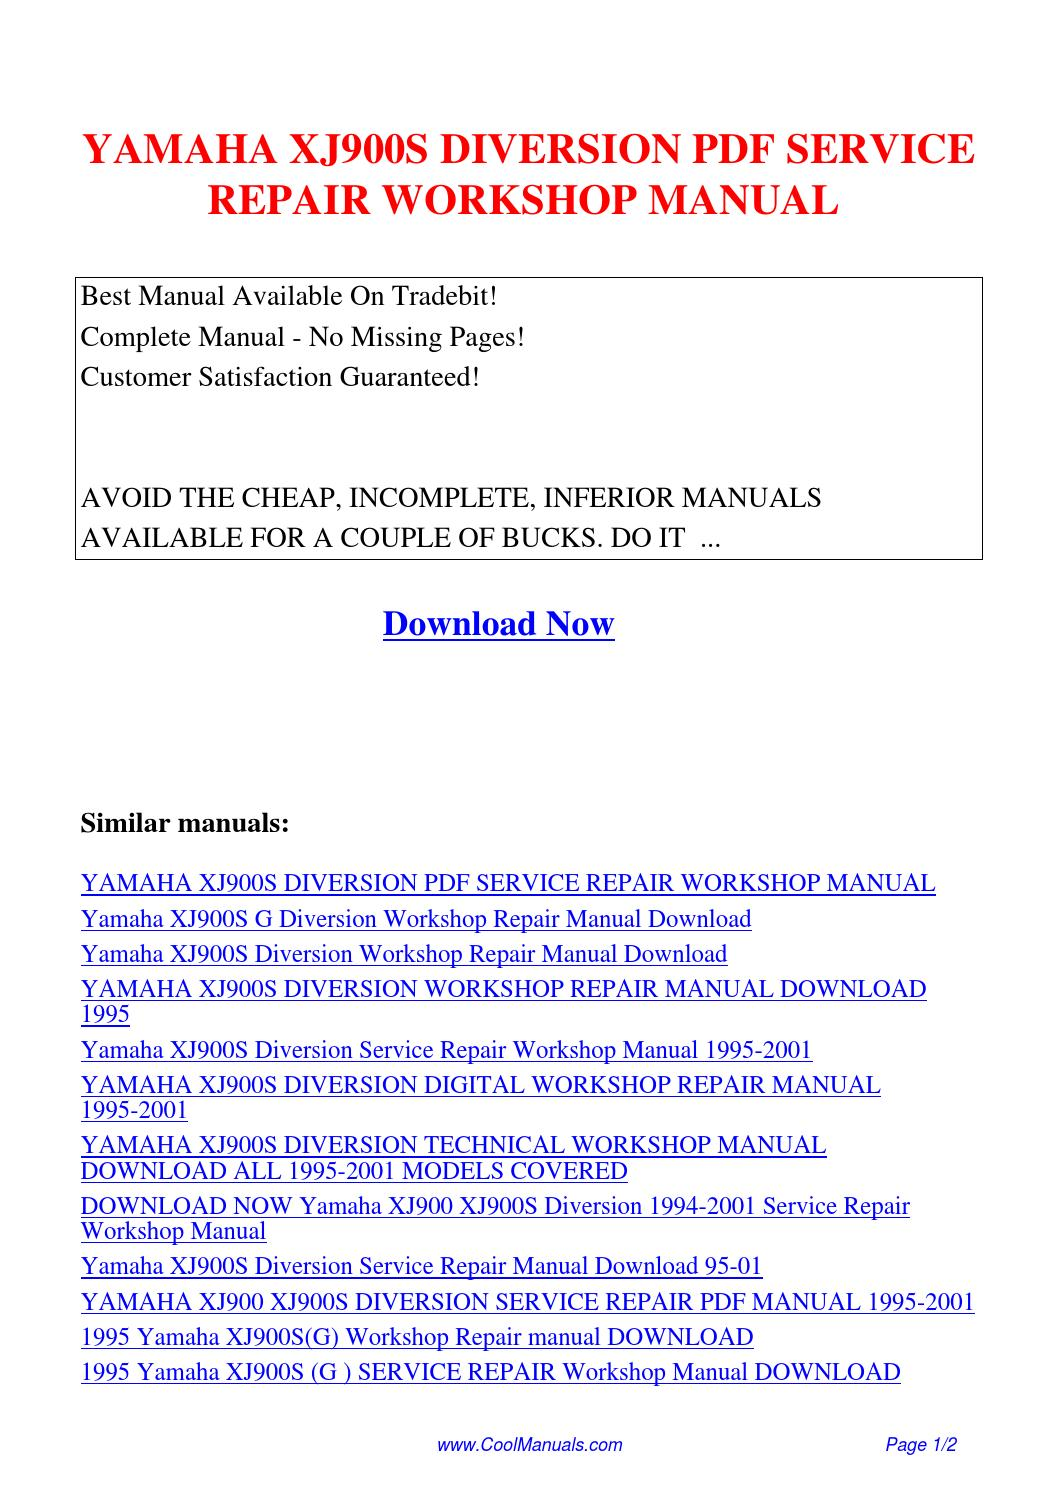 yamaha xj900s diversion service repair workshop manual pdf